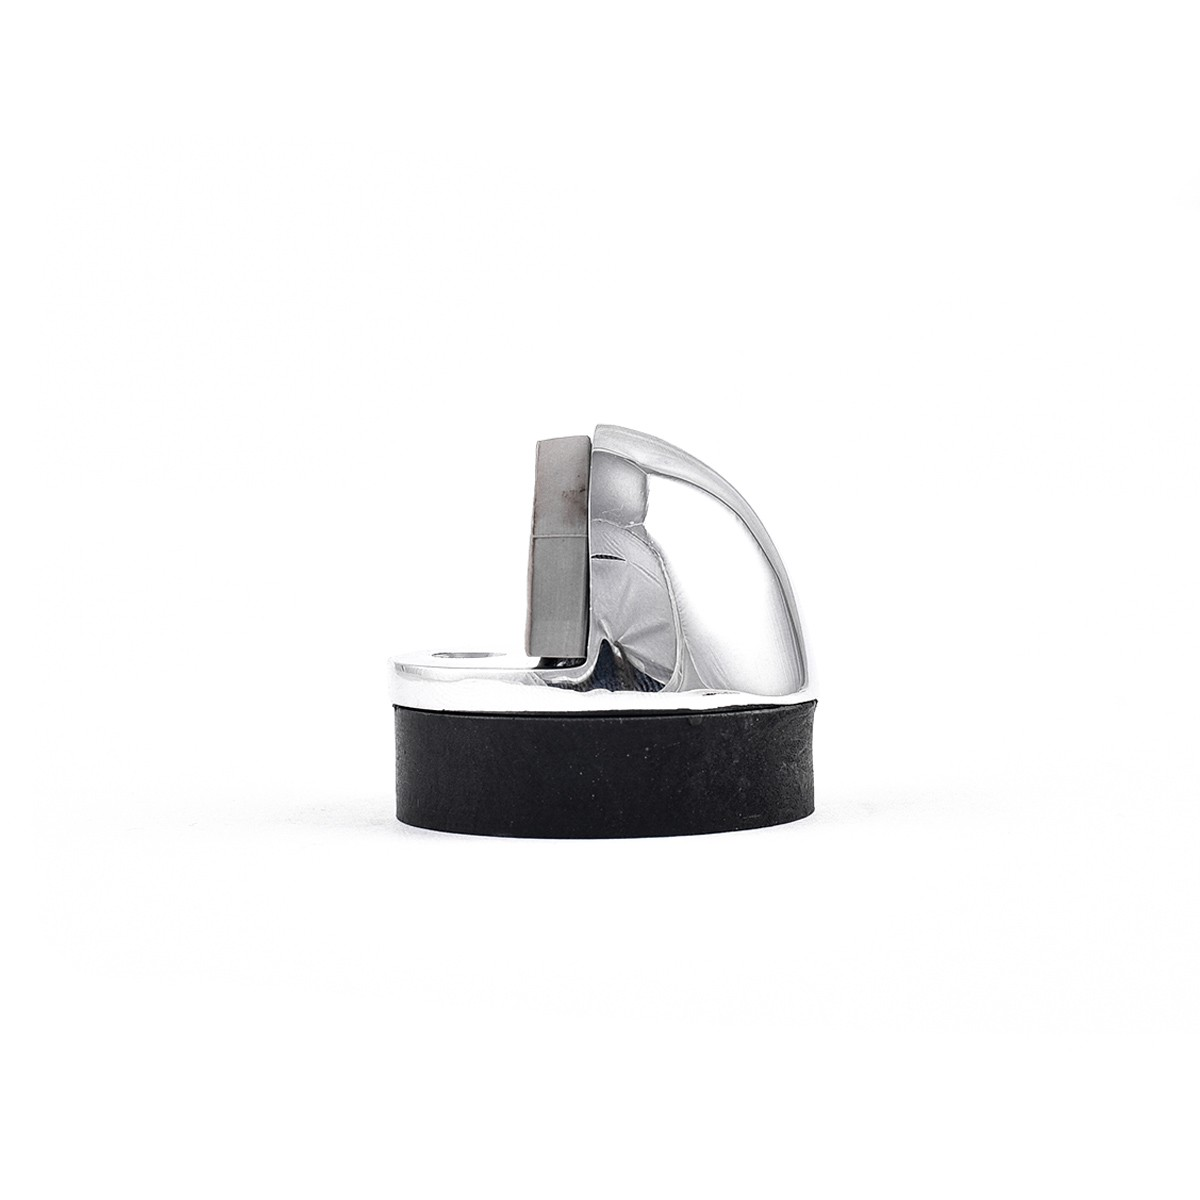 10 Brass Door Stop Dome Floor Mount Bumper Chrome Chrome Floor Door Stop Bumper Floor Mount Floormount Doorstop Half Dome Domed Door Stopper Door Bumper Low Profile Short Stop